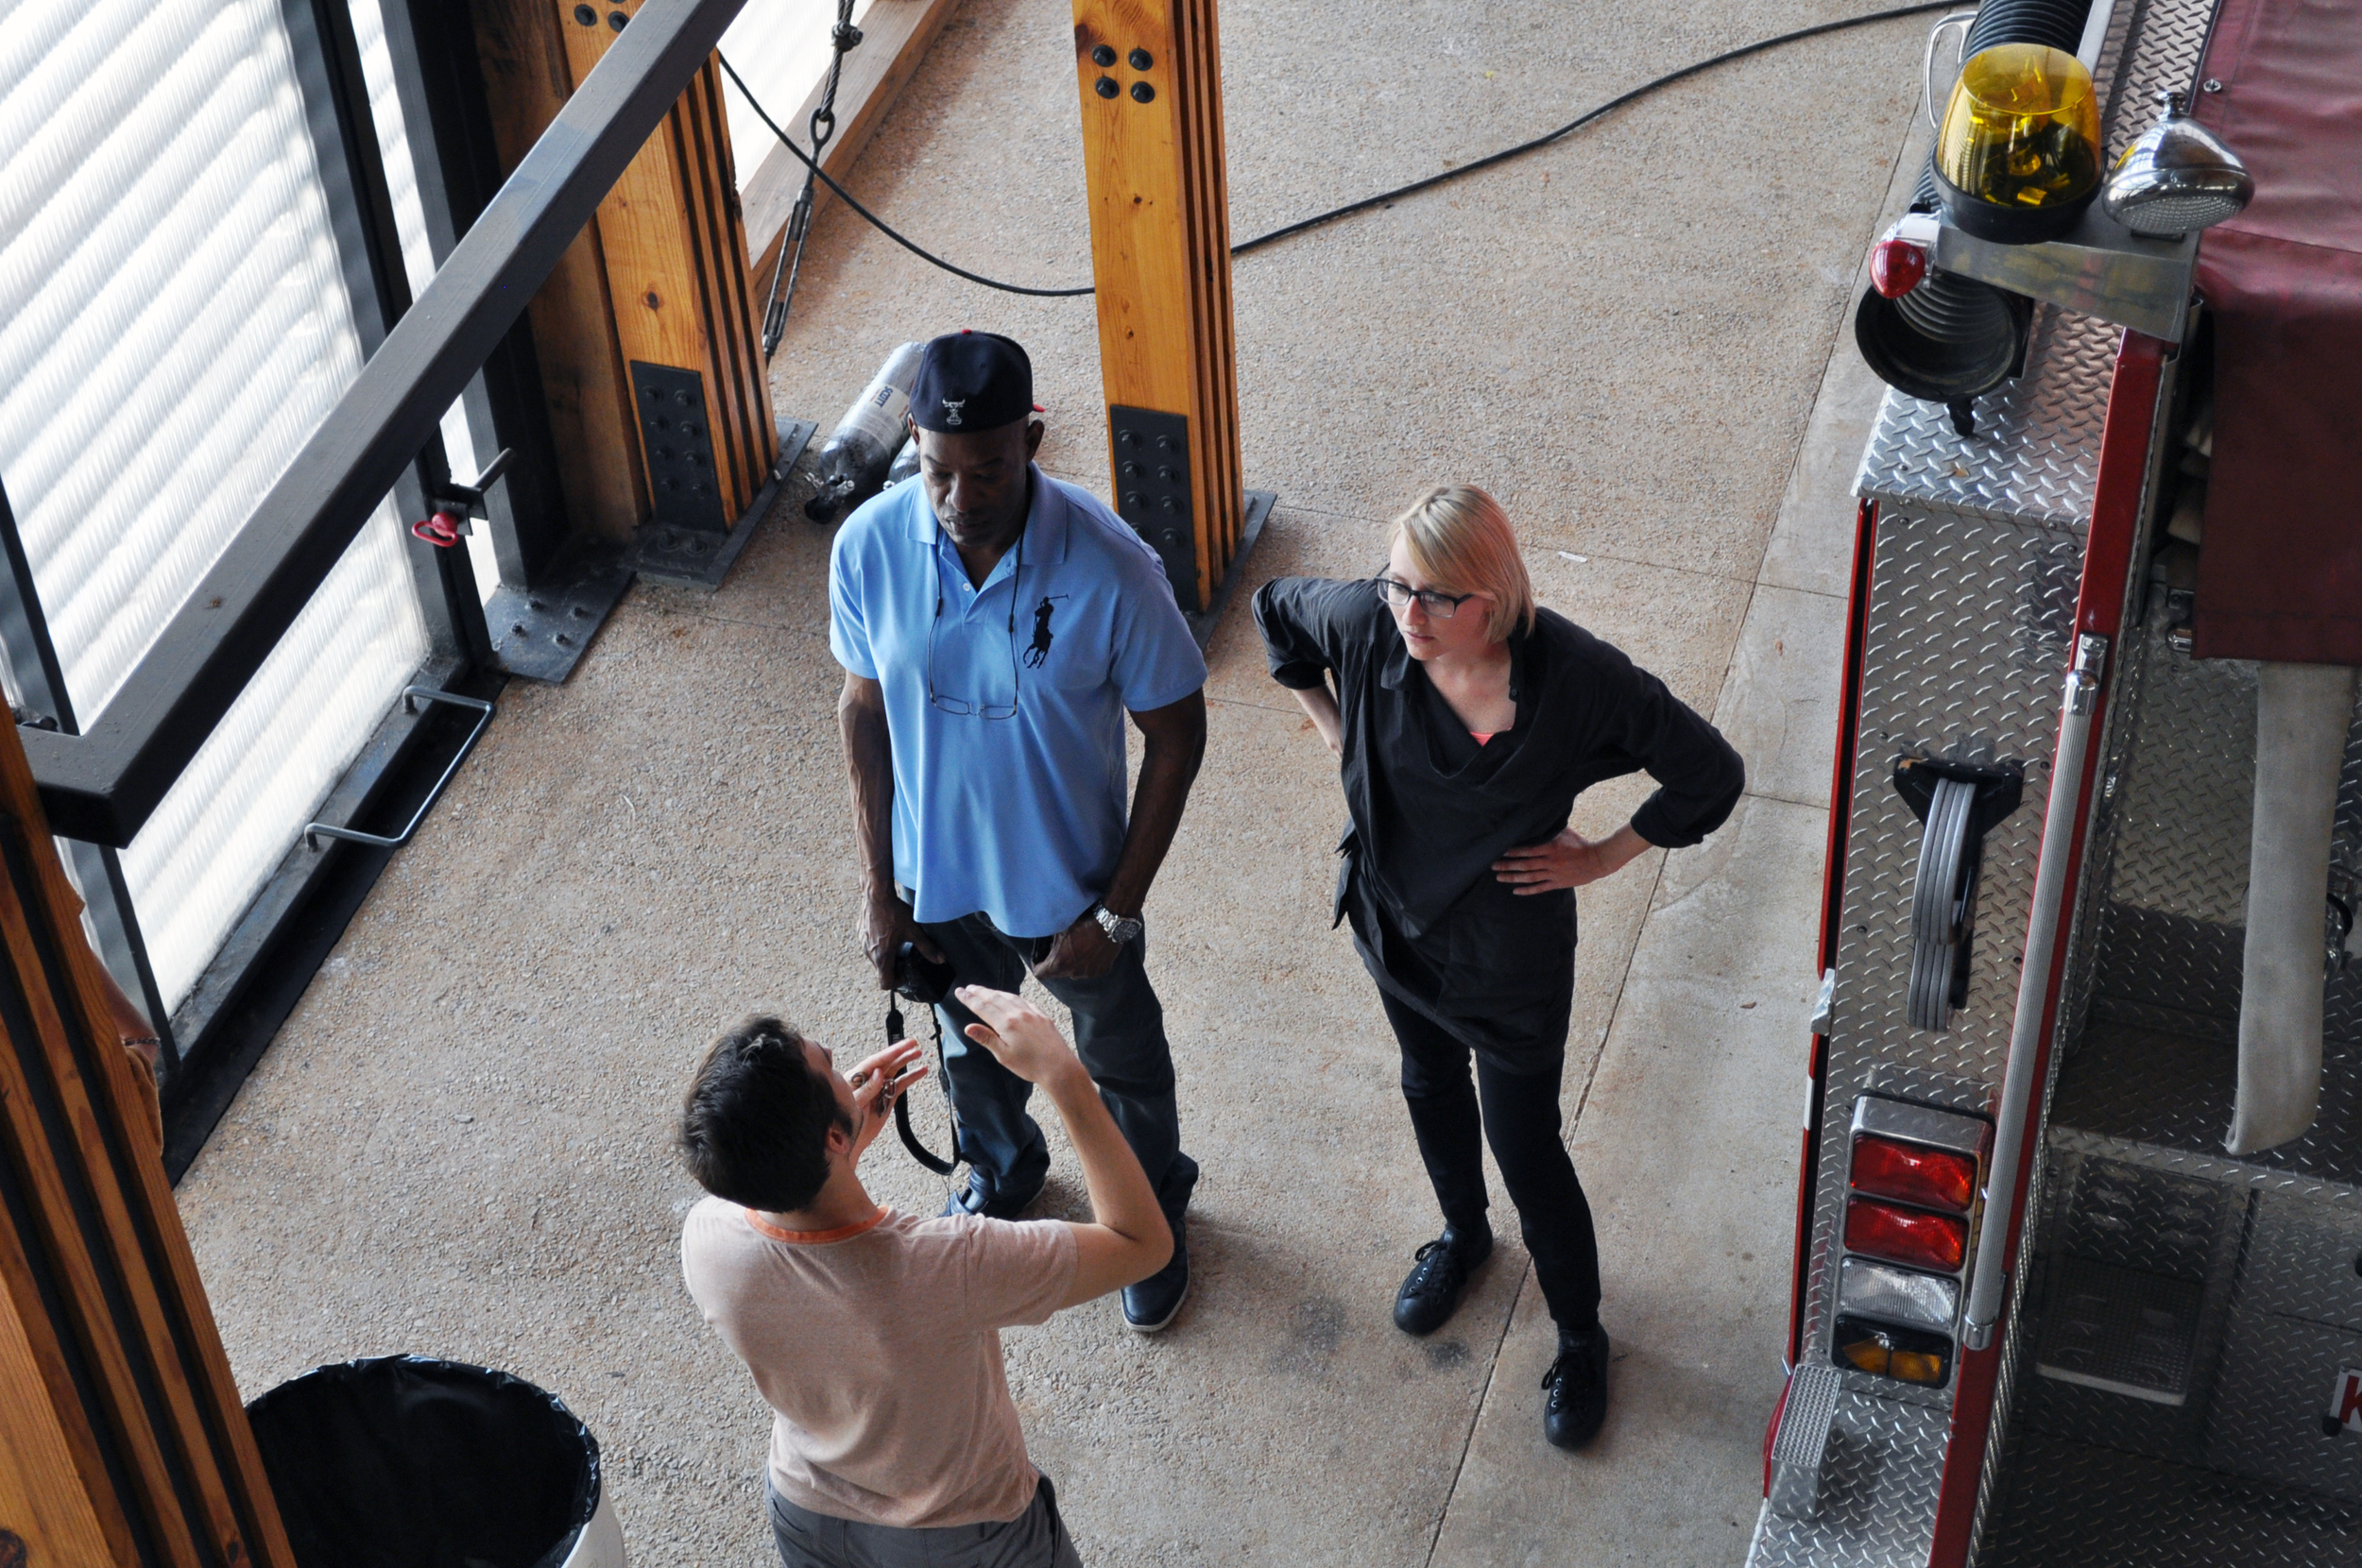 Dr. Willie Logan and Jennifer tour the Newbern Volunteer Fire Station with a Rural Studio student.